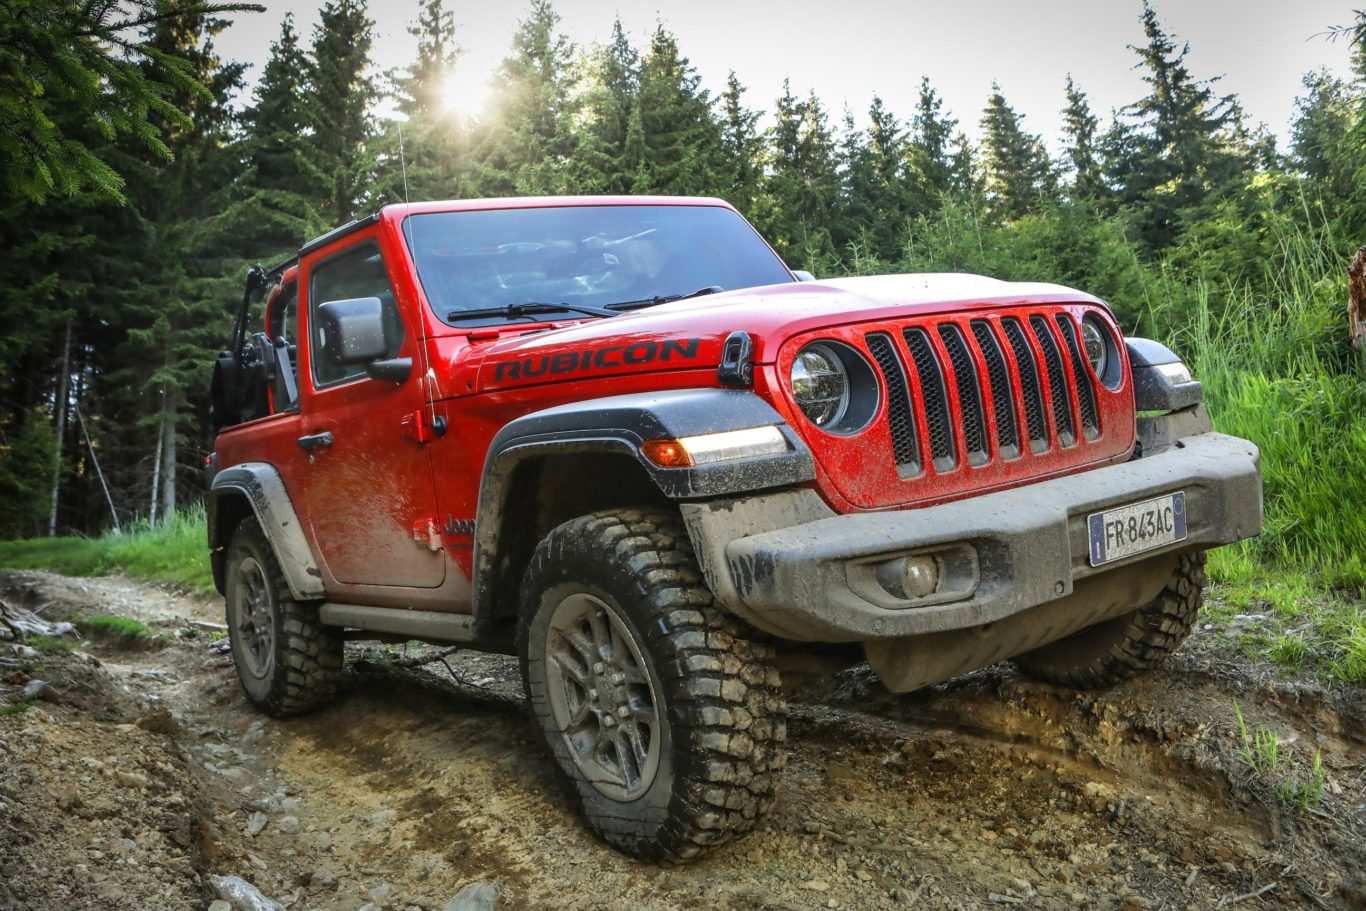 The new Jeep Wrangler has been created with off-road capability at its core